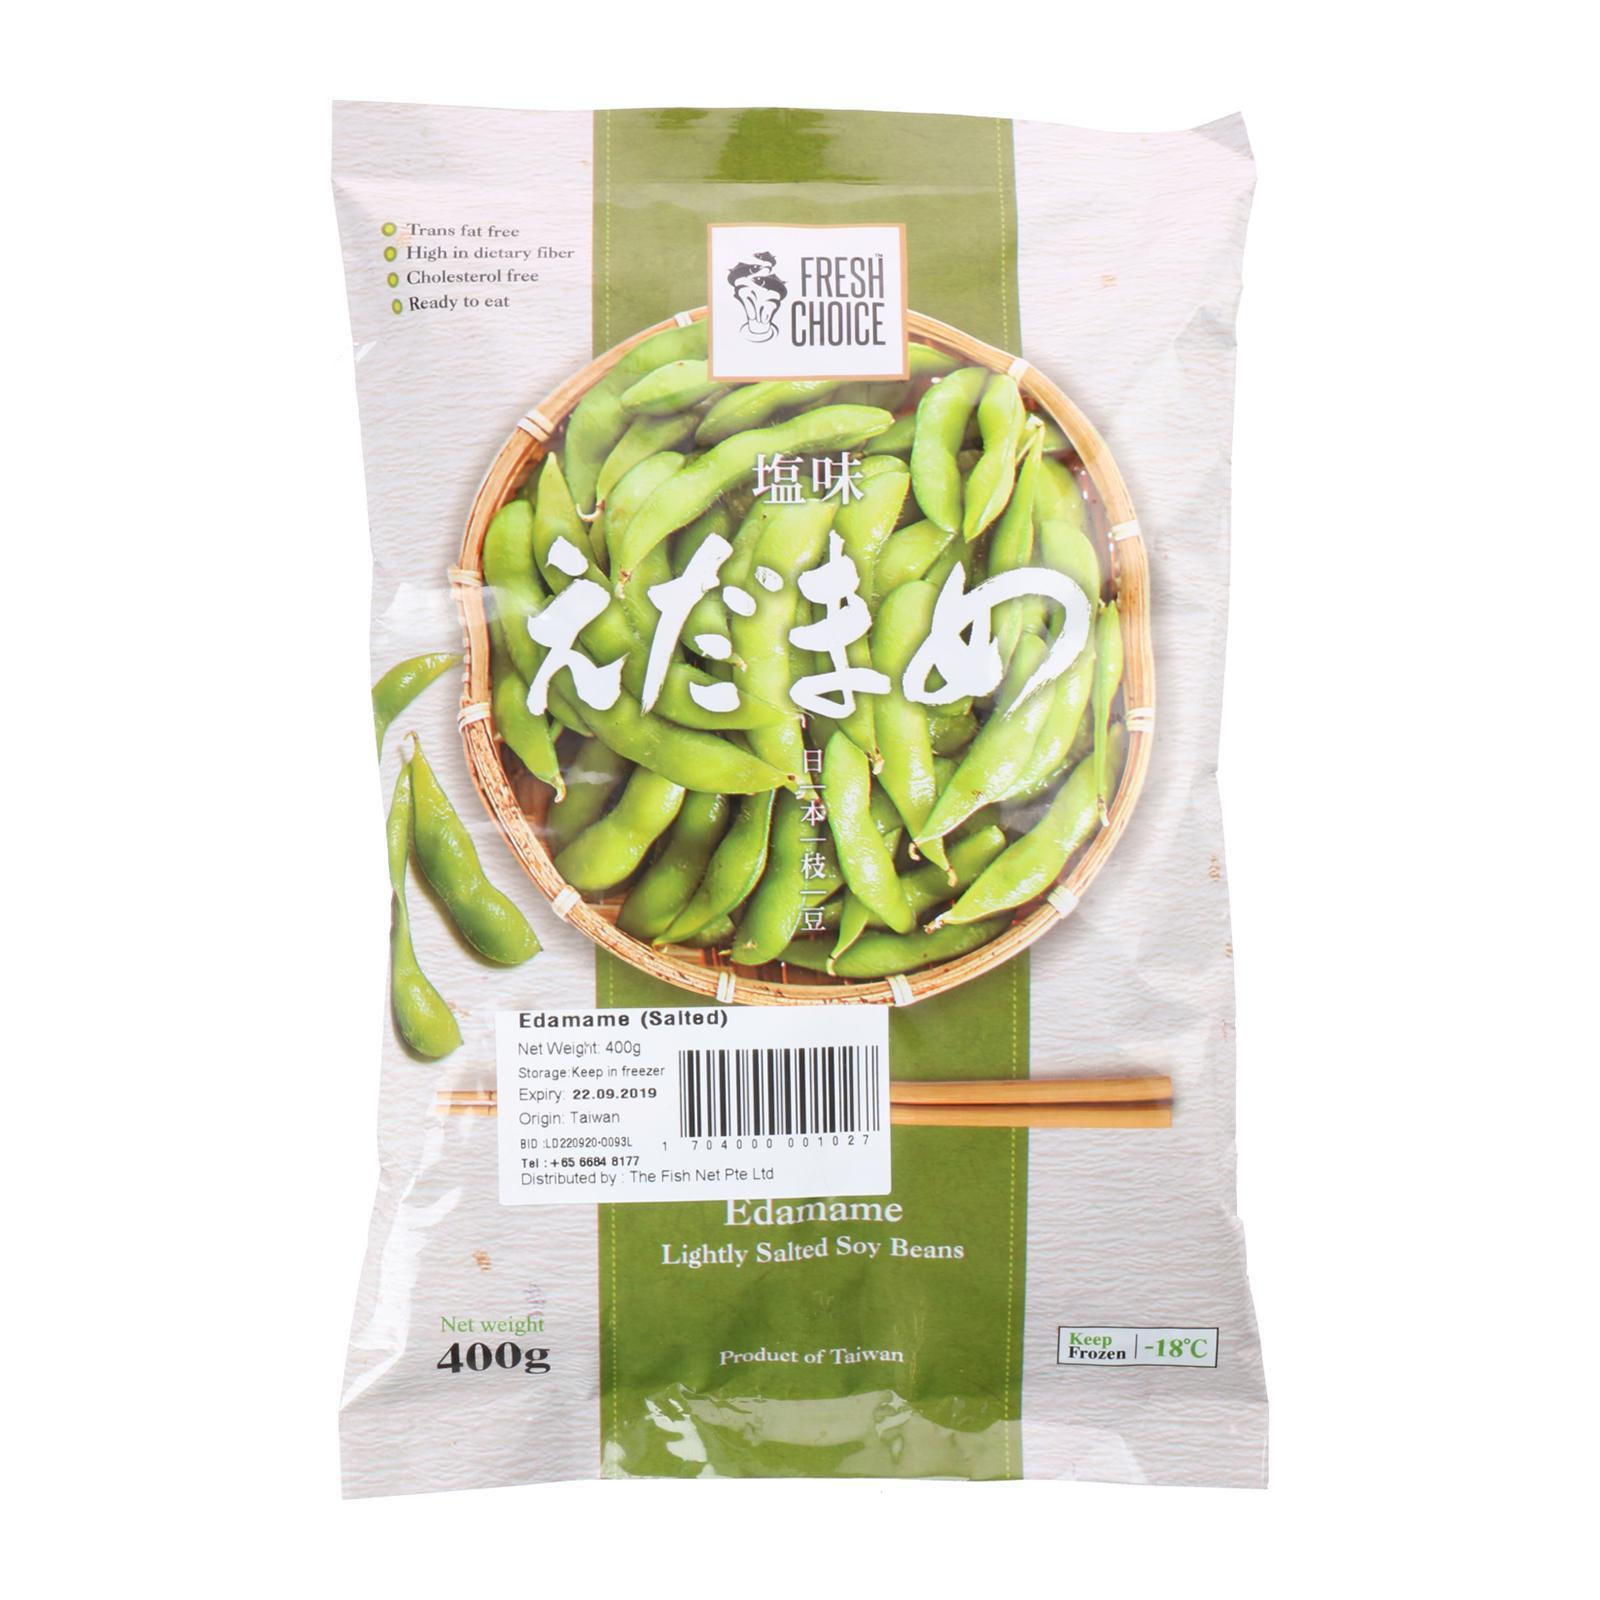 Catch Seafood Salted Edamame - Frozen By Redmart.